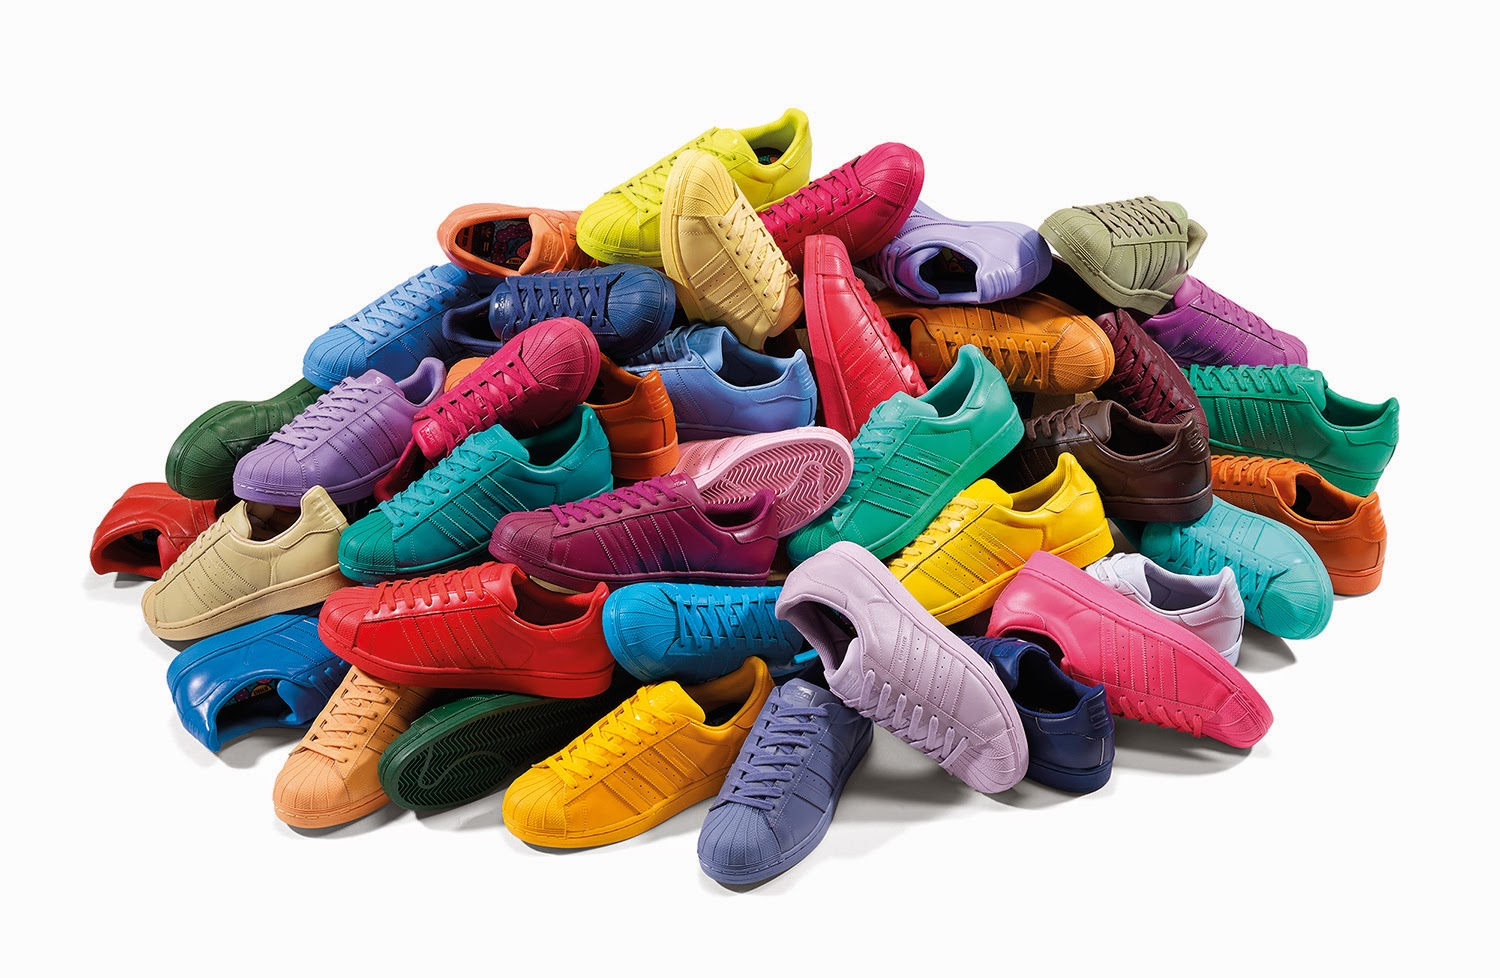 Adidas Originals Superstar Supercolor Collection designed by Pharrell Williams